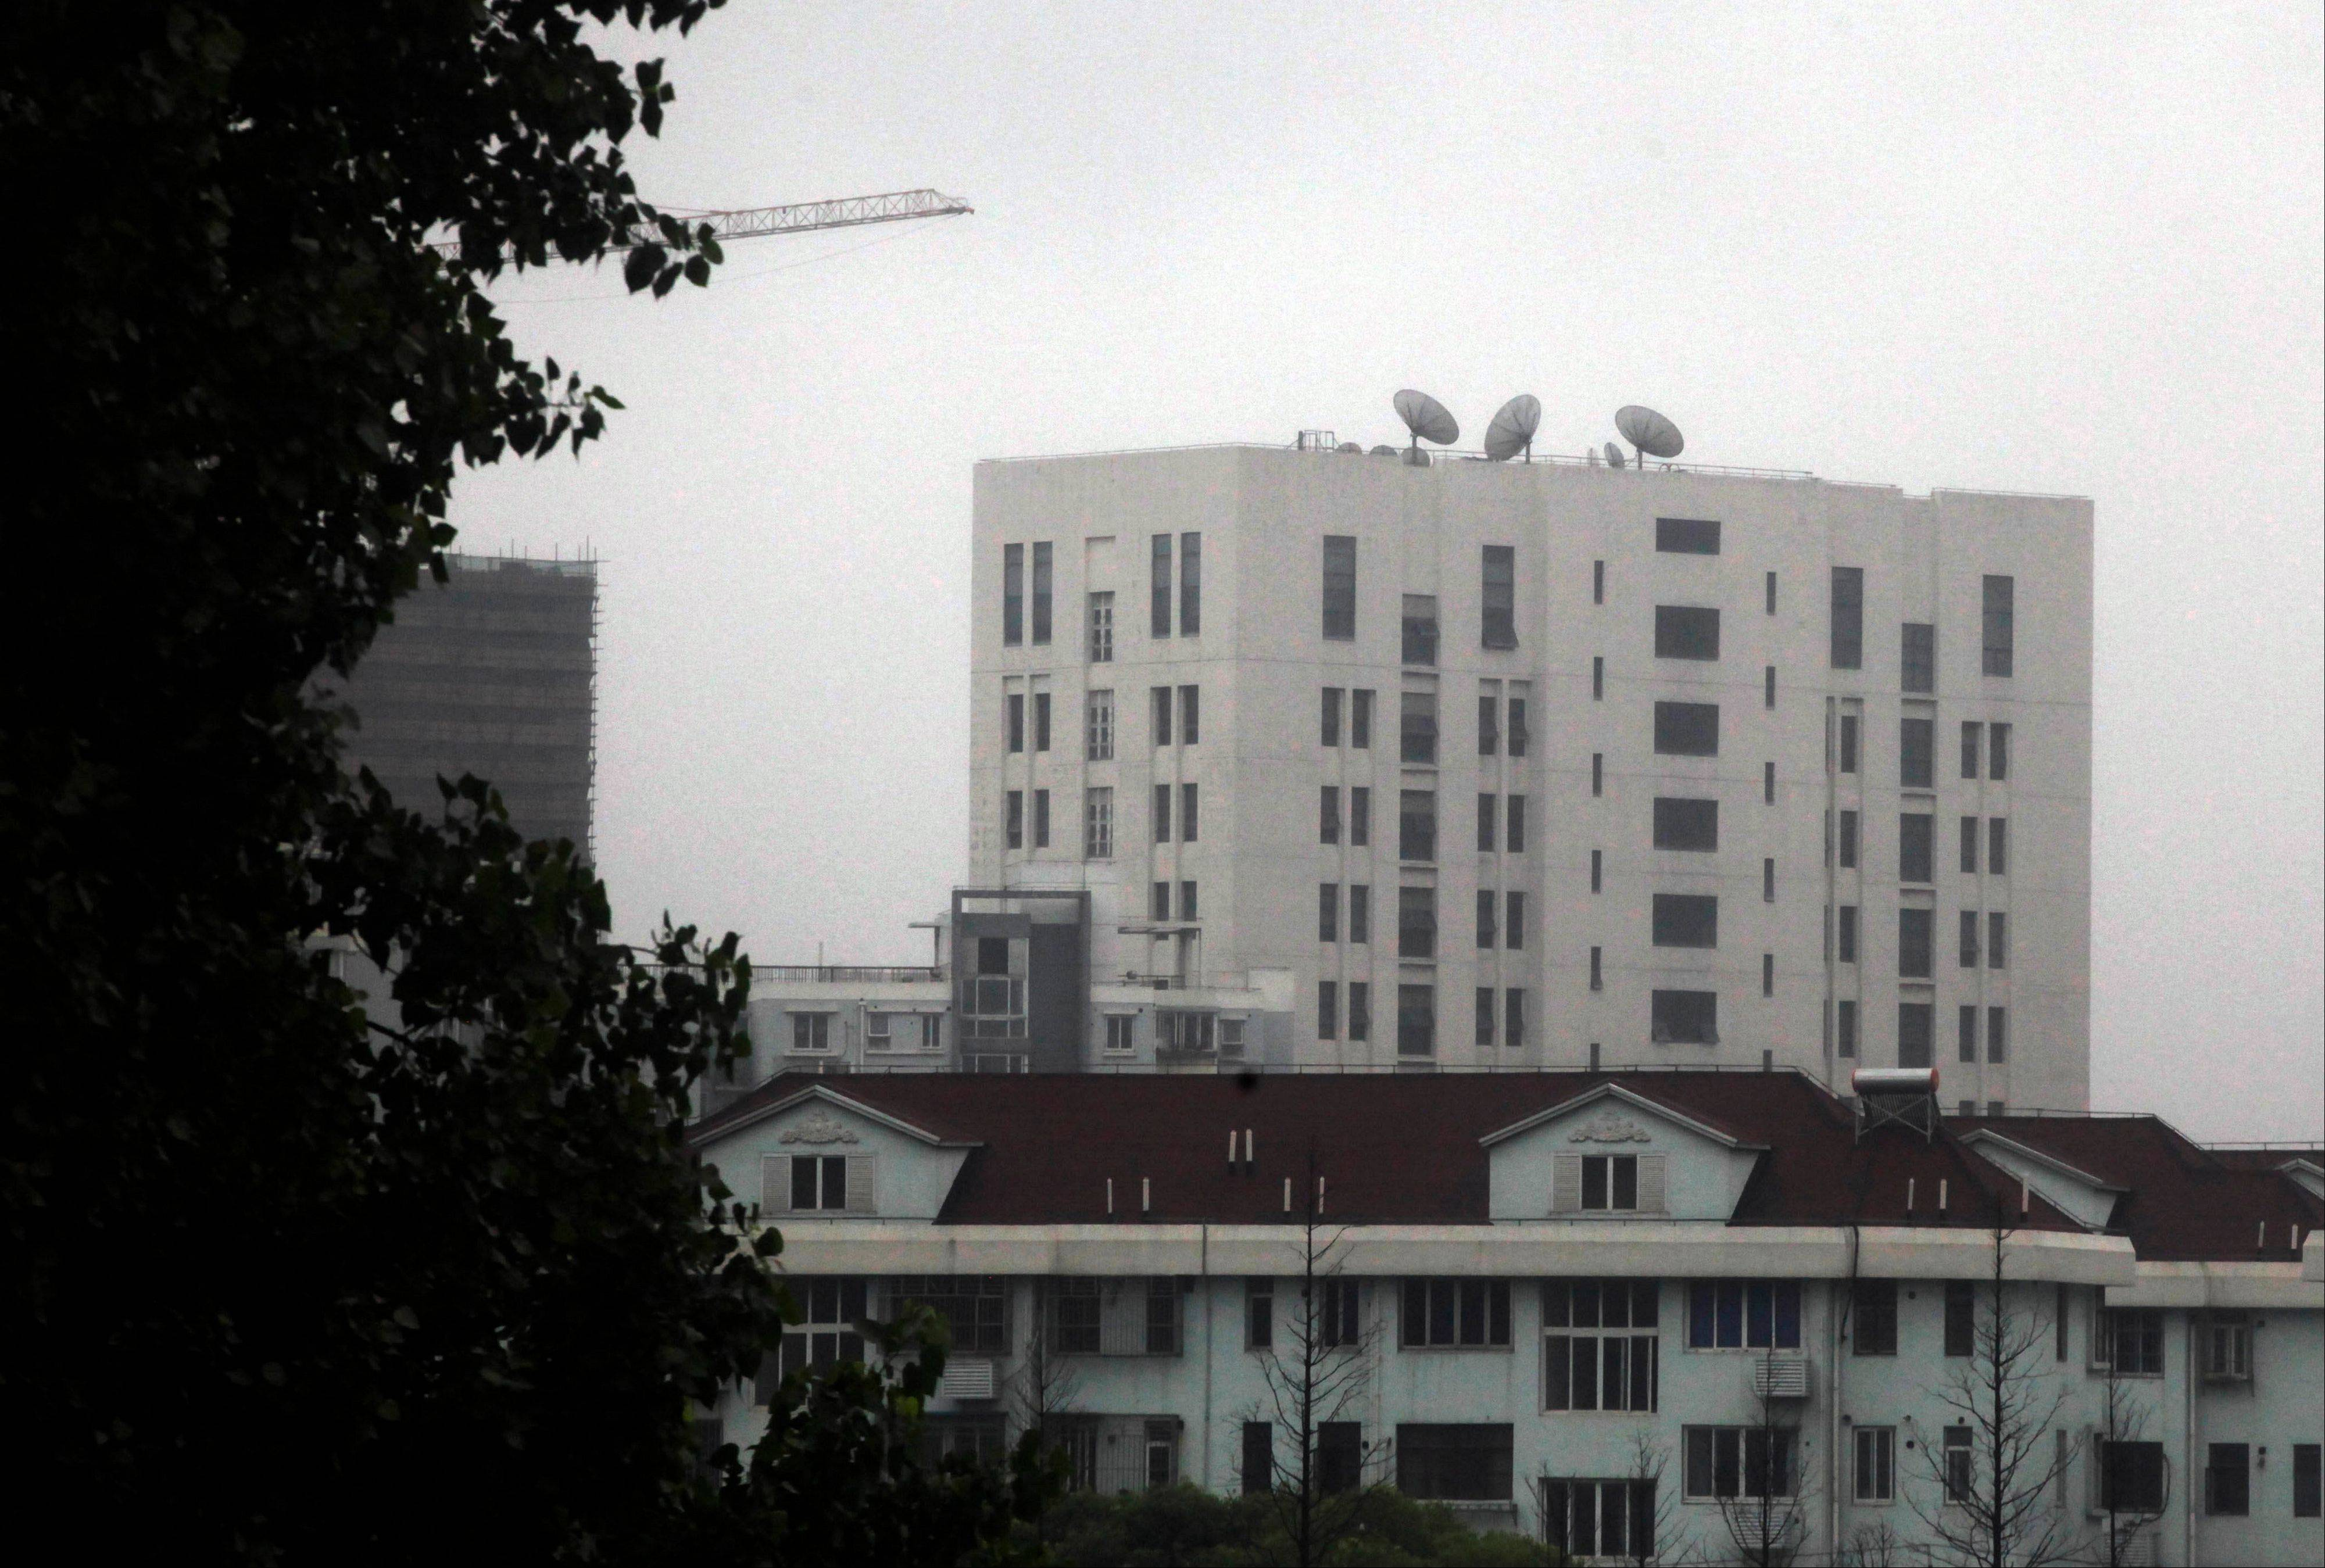 This May 31, 2013 photo shows the building housing �Unit 61398� of the People�s Liberation Army, center top, in the outskirts of Shanghai, China. After years of quiet and largely unsuccessful diplomacy, the U.S. has brought its persistent computer-hacking problems with China into the open, delivering a steady drumbeat of reports accusing Beijing�s government and military of computer-based attacks against America.